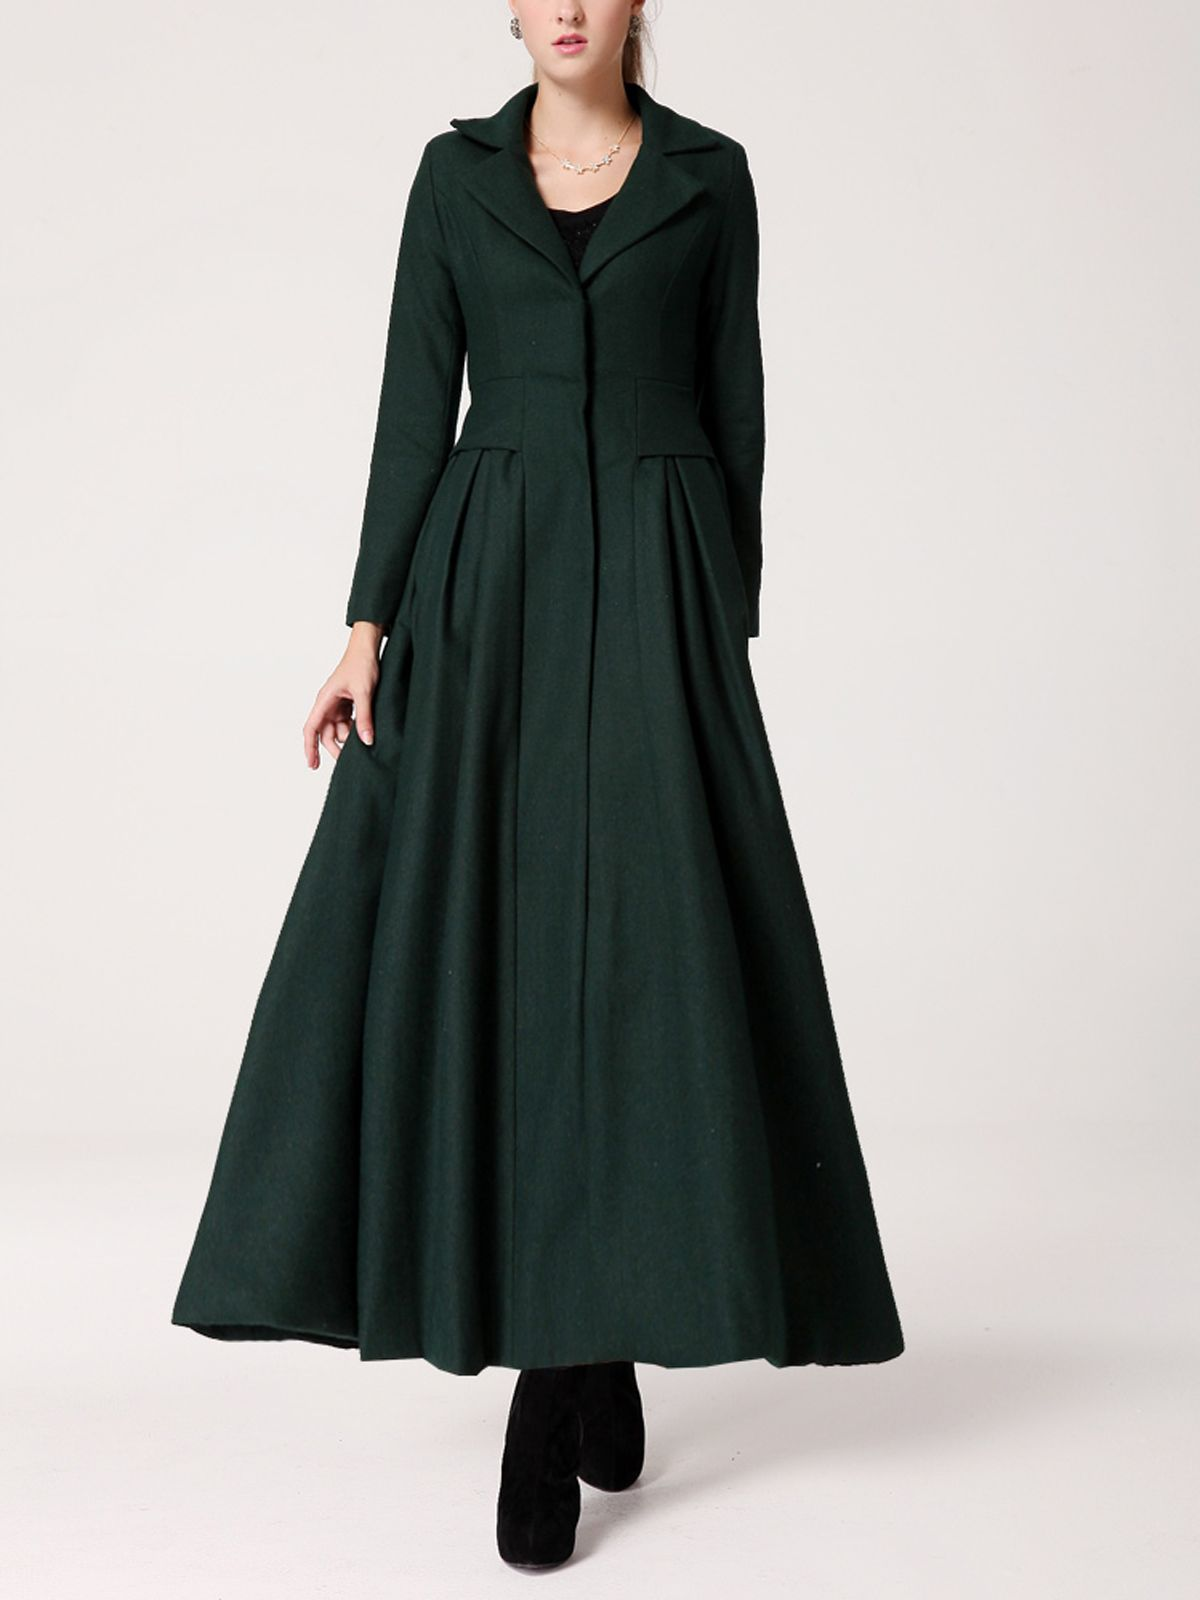 Details About New Womens Long Vintage Ankle Dress Military